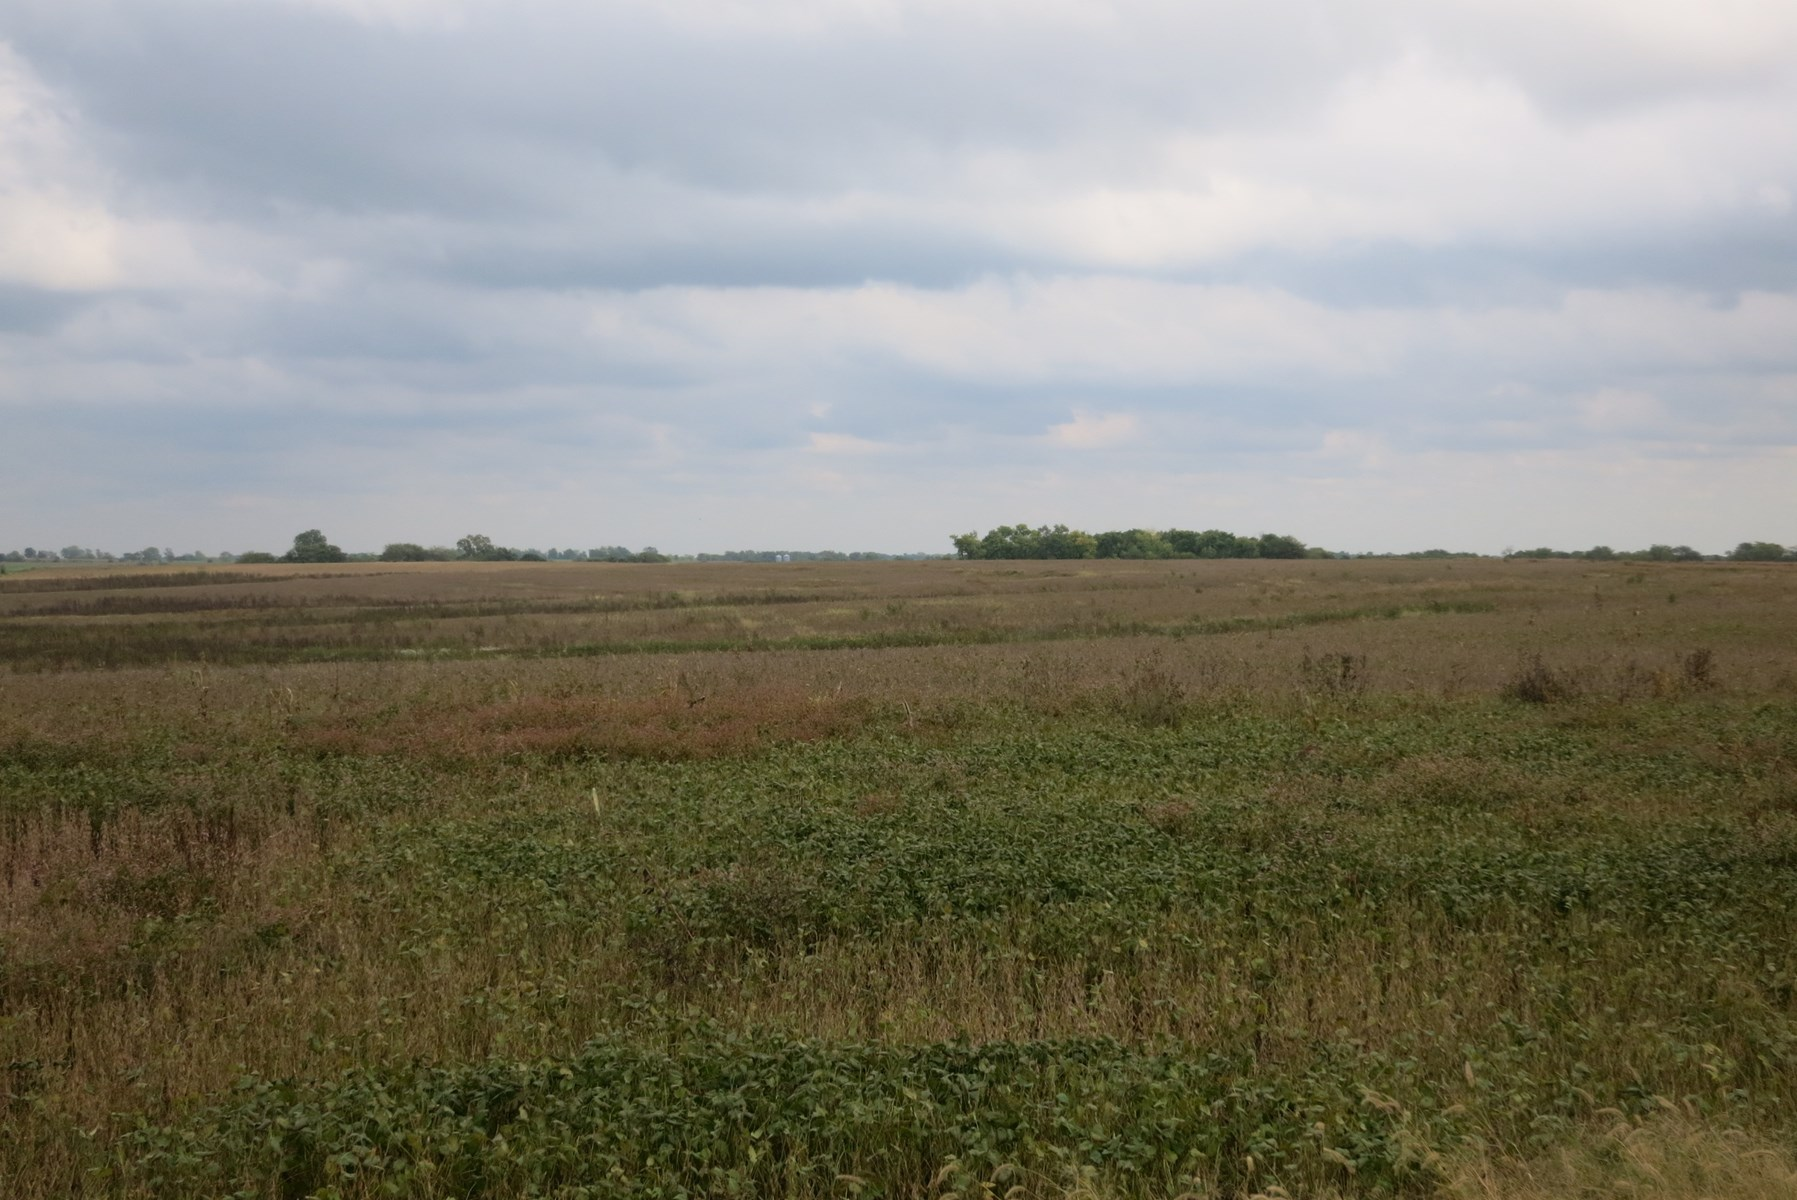 For Sale 199 Acres in Northern Harrison County